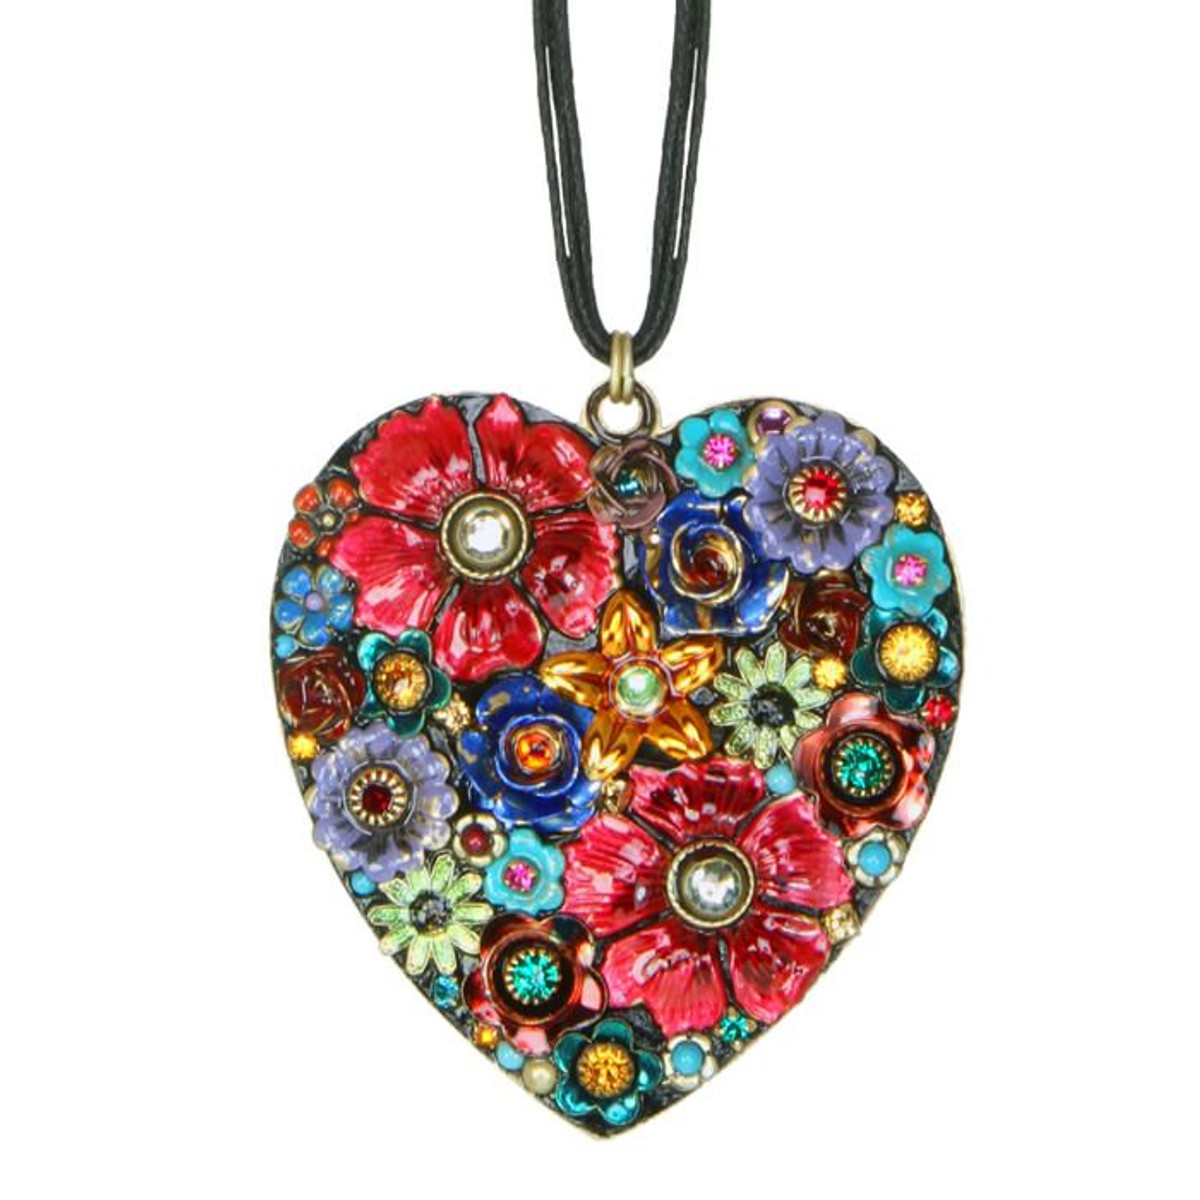 Eden Large Heart Pendant With Leather Strip